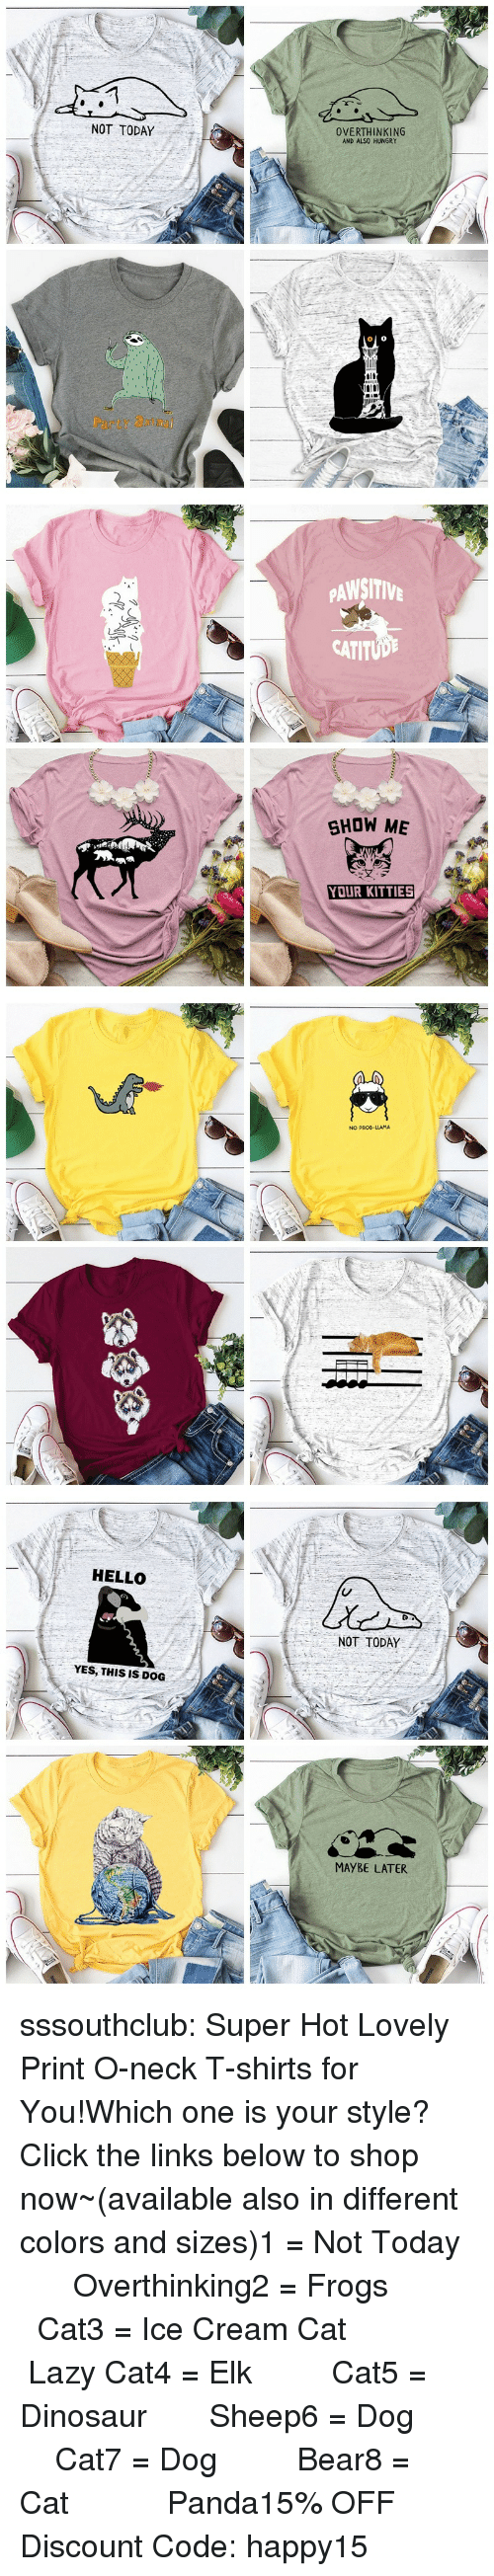 links: NOT TODAY  OVERTHINKING  AND ALSO HUNGRY  Party atm   PAWSITIV  CATITUD  SHOW ME  YOUR KITTIES   NO PROD-LLAMA   HELLO  NOT TODAY  YES, THIS IS DOG  MAYBE LATER sssouthclub:  Super Hot Lovely Print O-neck T-shirts for You!Which one is your style? Click the links below to shop now~(available also in different colors and sizes)1 = Not Today  ☆★  Overthinking2 = Frogs   ☆★  Cat3 = Ice Cream Cat  ☆★  Lazy Cat4 = Elk   ☆★  Cat5 = Dinosaur  ☆★  Sheep6 = Dog   ☆★  Cat7 = Dog   ☆★  Bear8 = Cat    ☆★  Panda15% OFF Discount Code: happy15